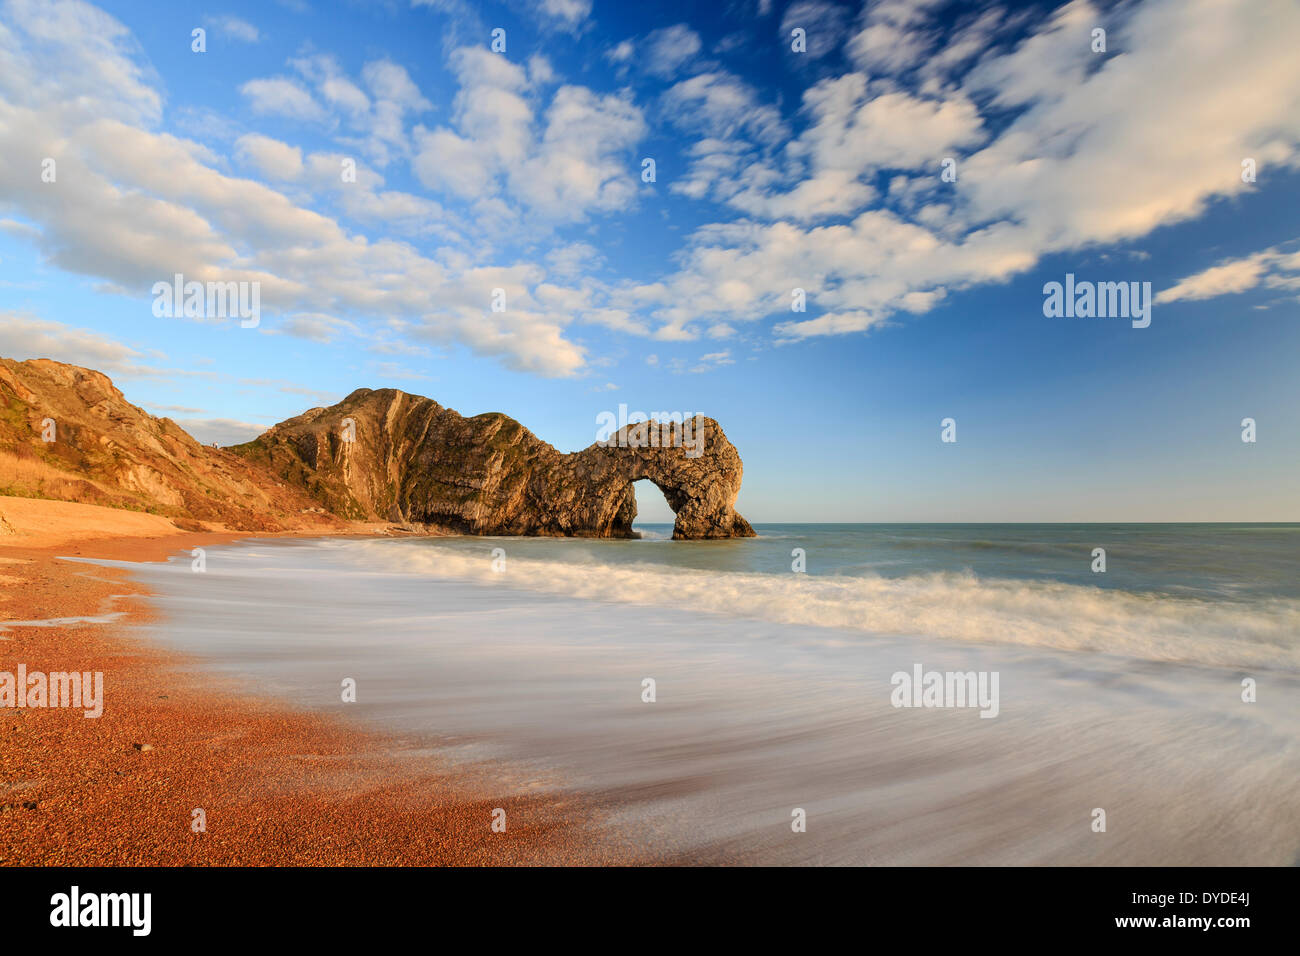 The natural Rock Arch of Durdle Door lit by the evening sun. - Stock Image